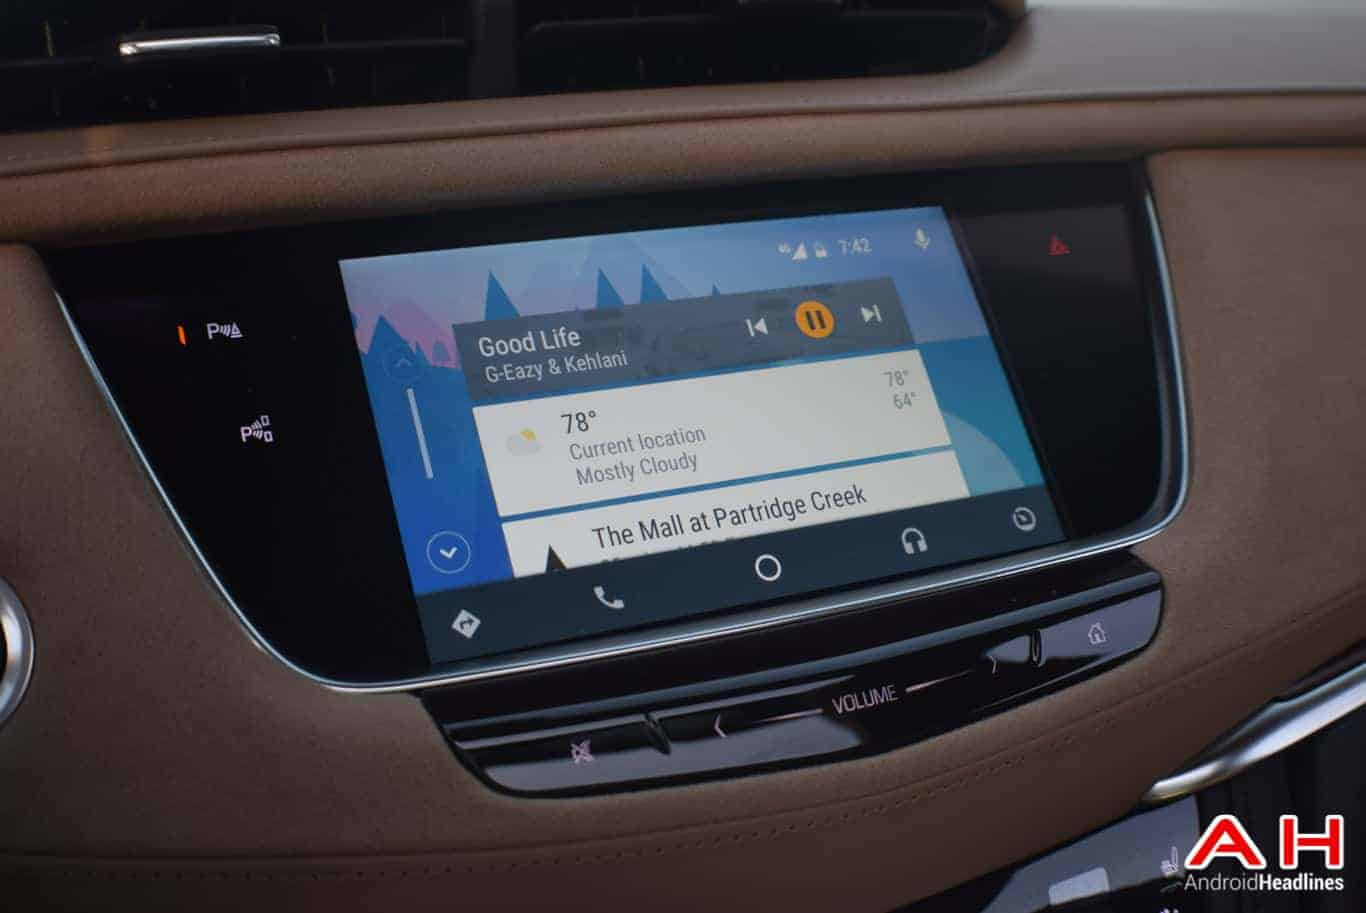 2017 Cadillac XT5 Android Auto Review AM AH 46